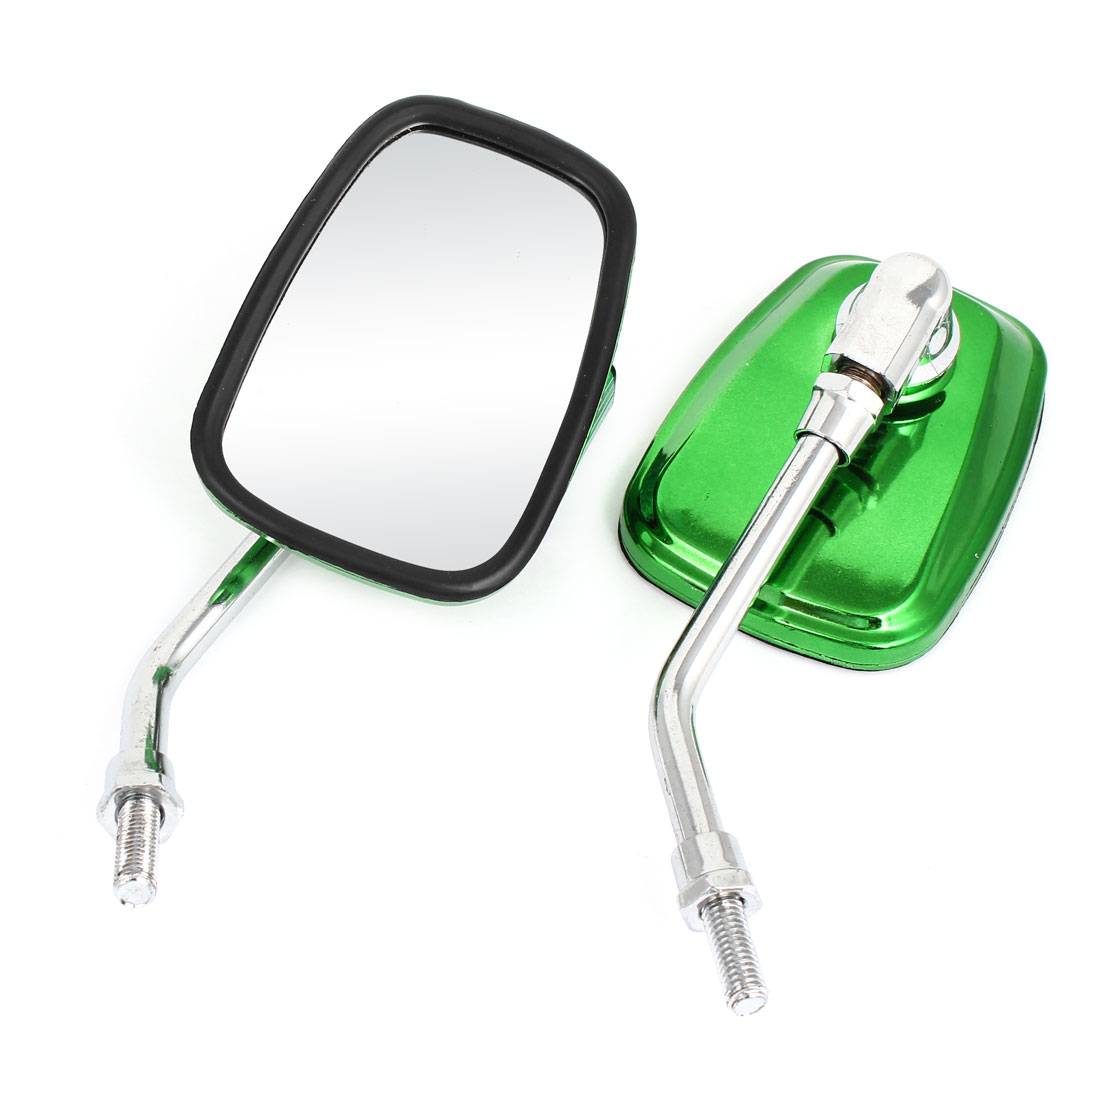 Pair Green Casing Vision Rectangular Bar End Motorcycle Rear View Spot Mirror